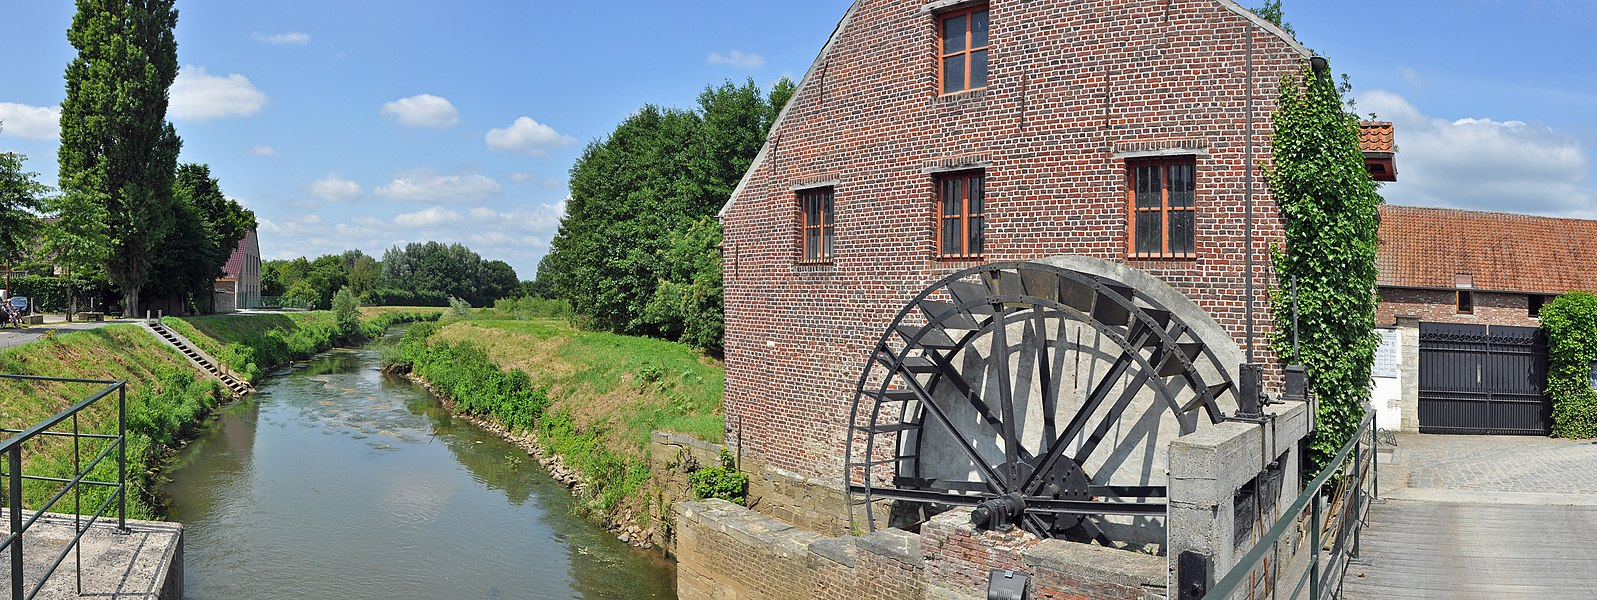 Zichem (municipality of Scherpenheuvel-Zichem, province of Vlaams-Brabant, Belgium): the watermill on the Demer river